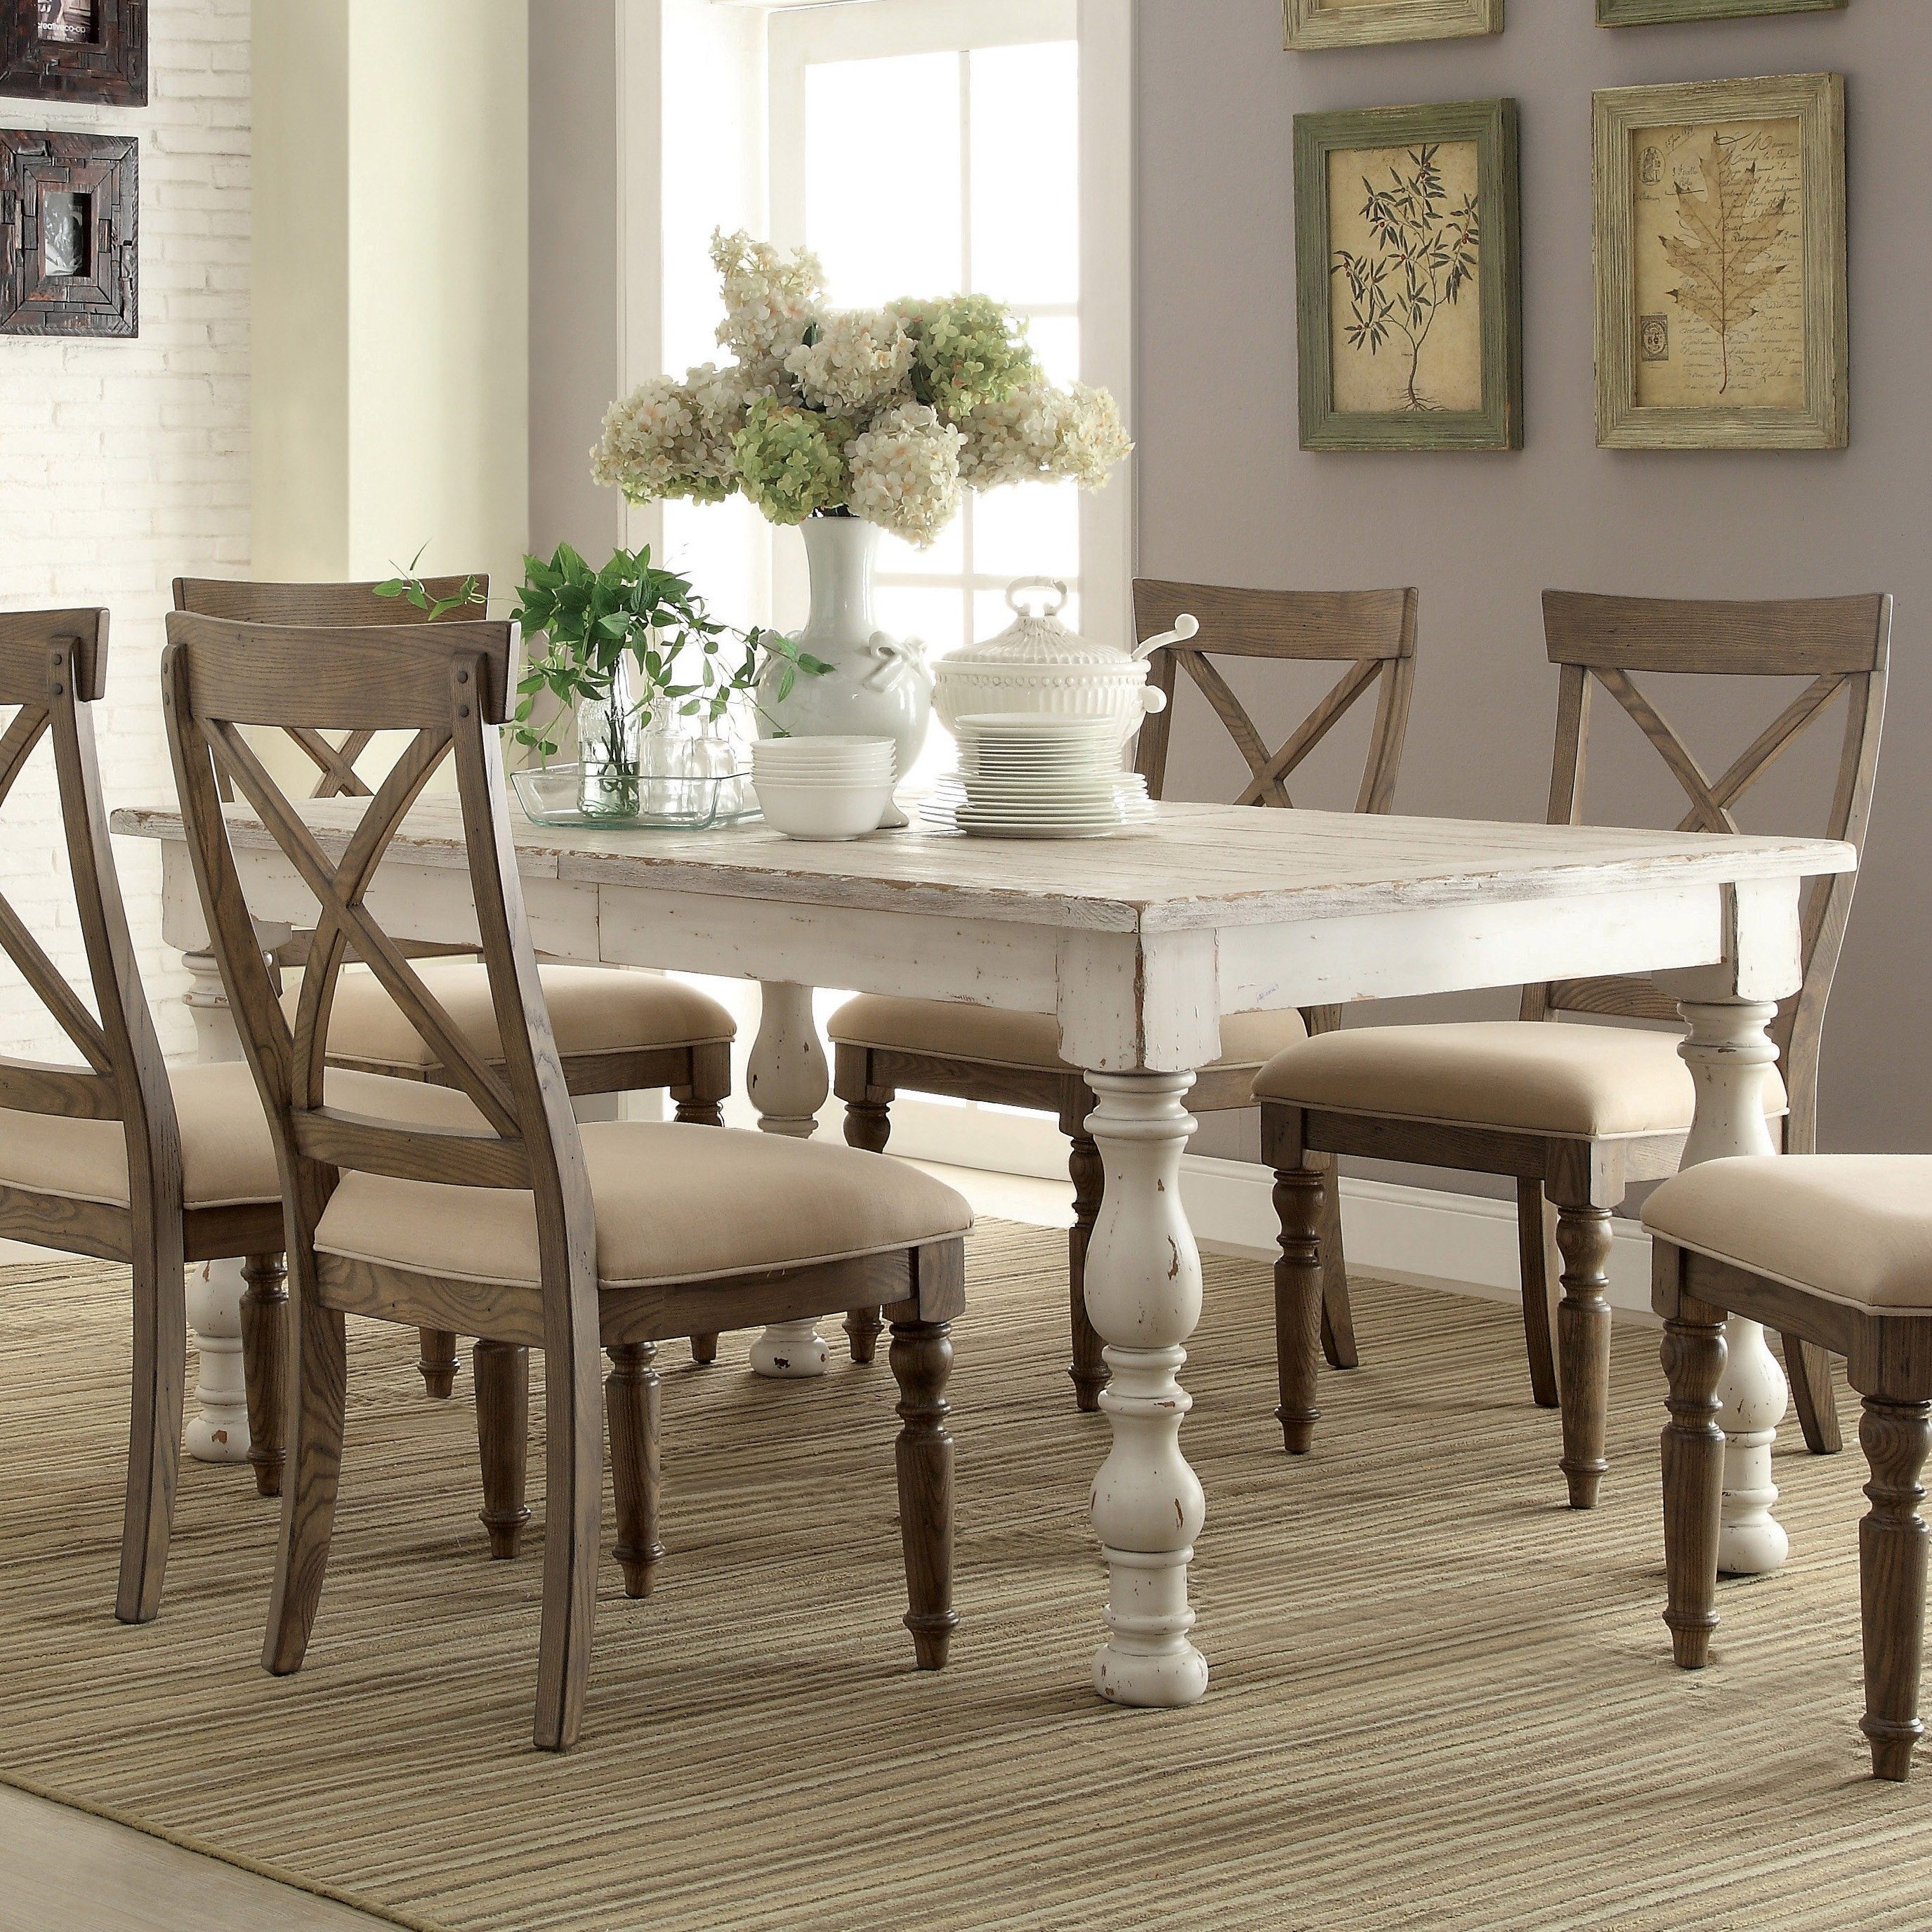 Dining Table With Chairs And Bench: Aberdeen Wood Rectangular Dining Table And Chairs In